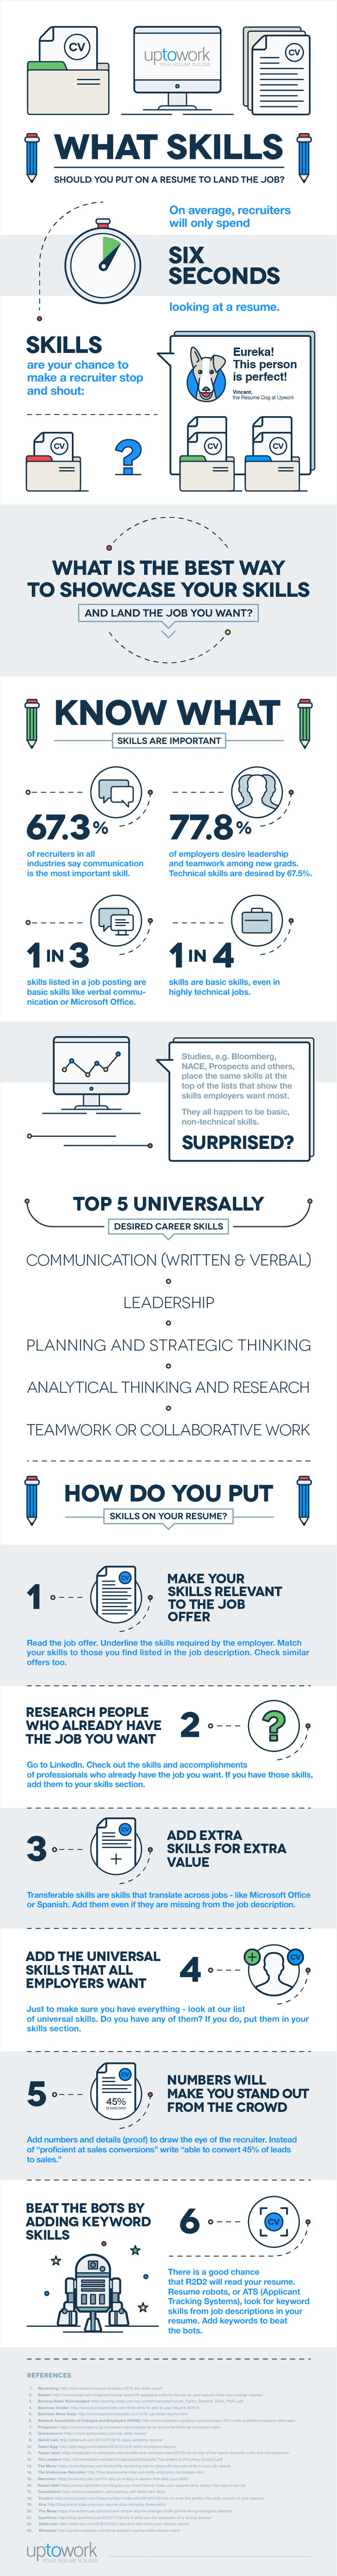 125 best Resume Tips images on Pinterest | Resume tips, Gym and Hr ...